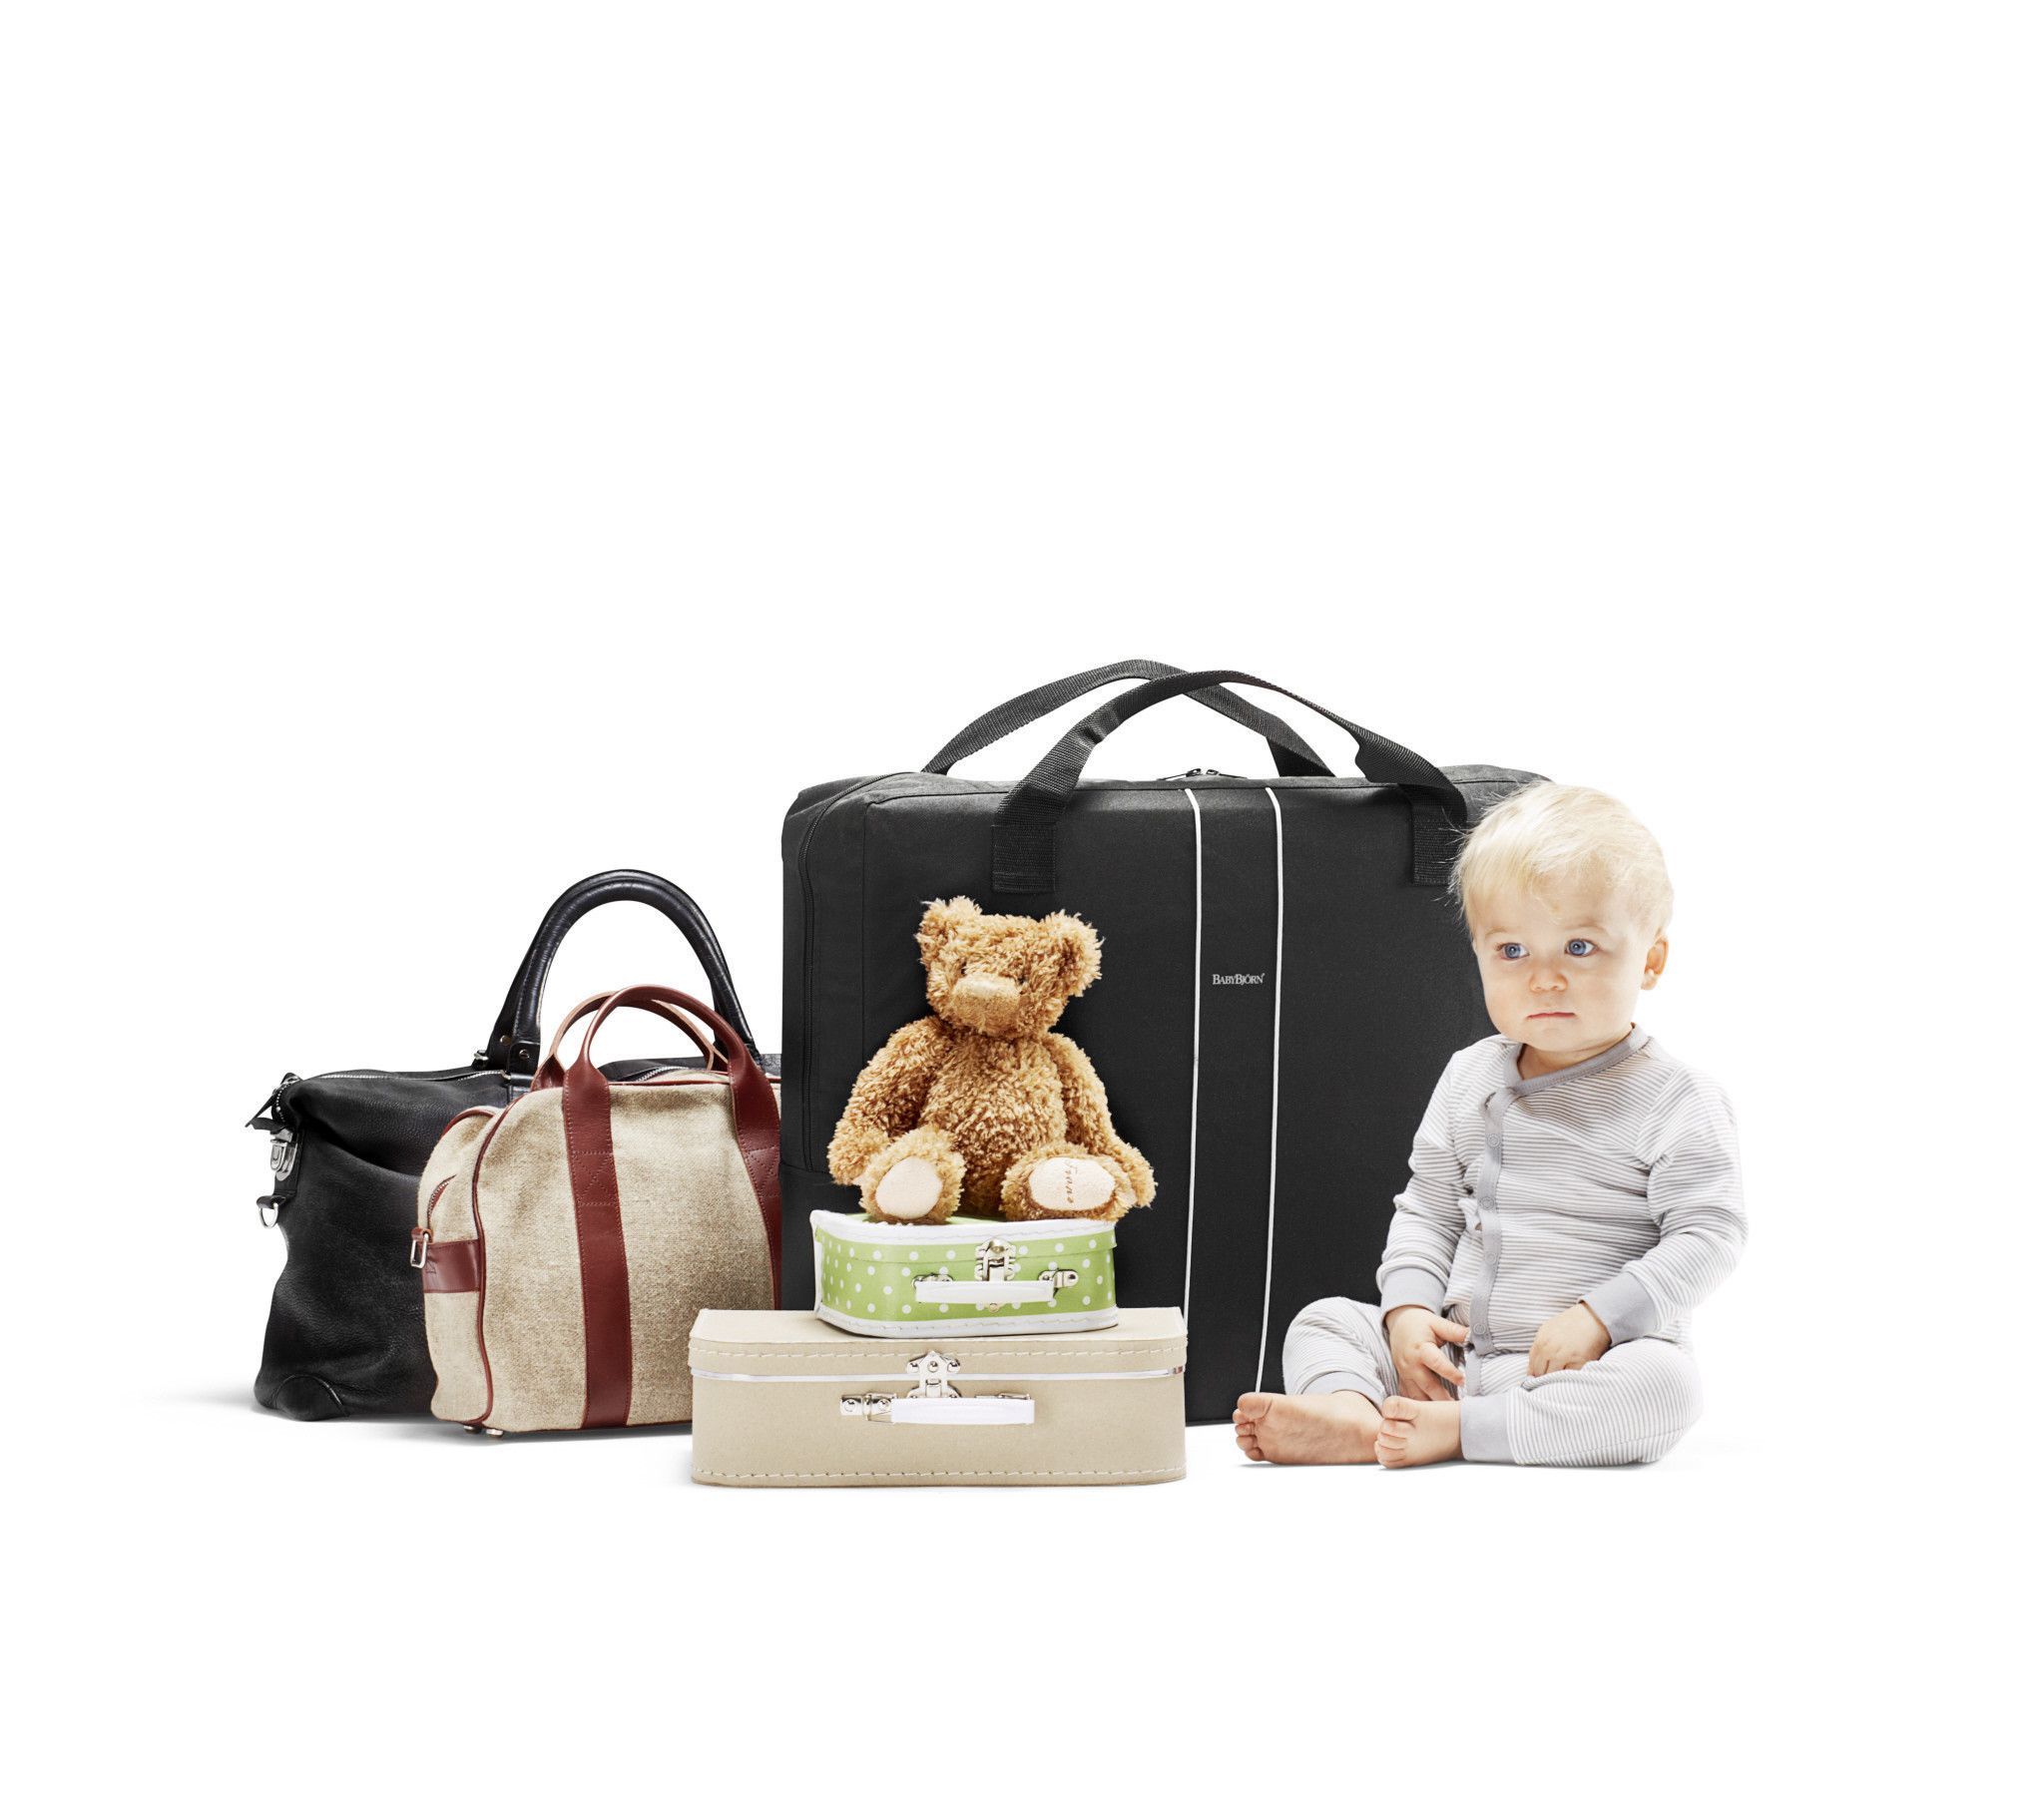 BABYBJÖRN - Travel Crib Light, Silver